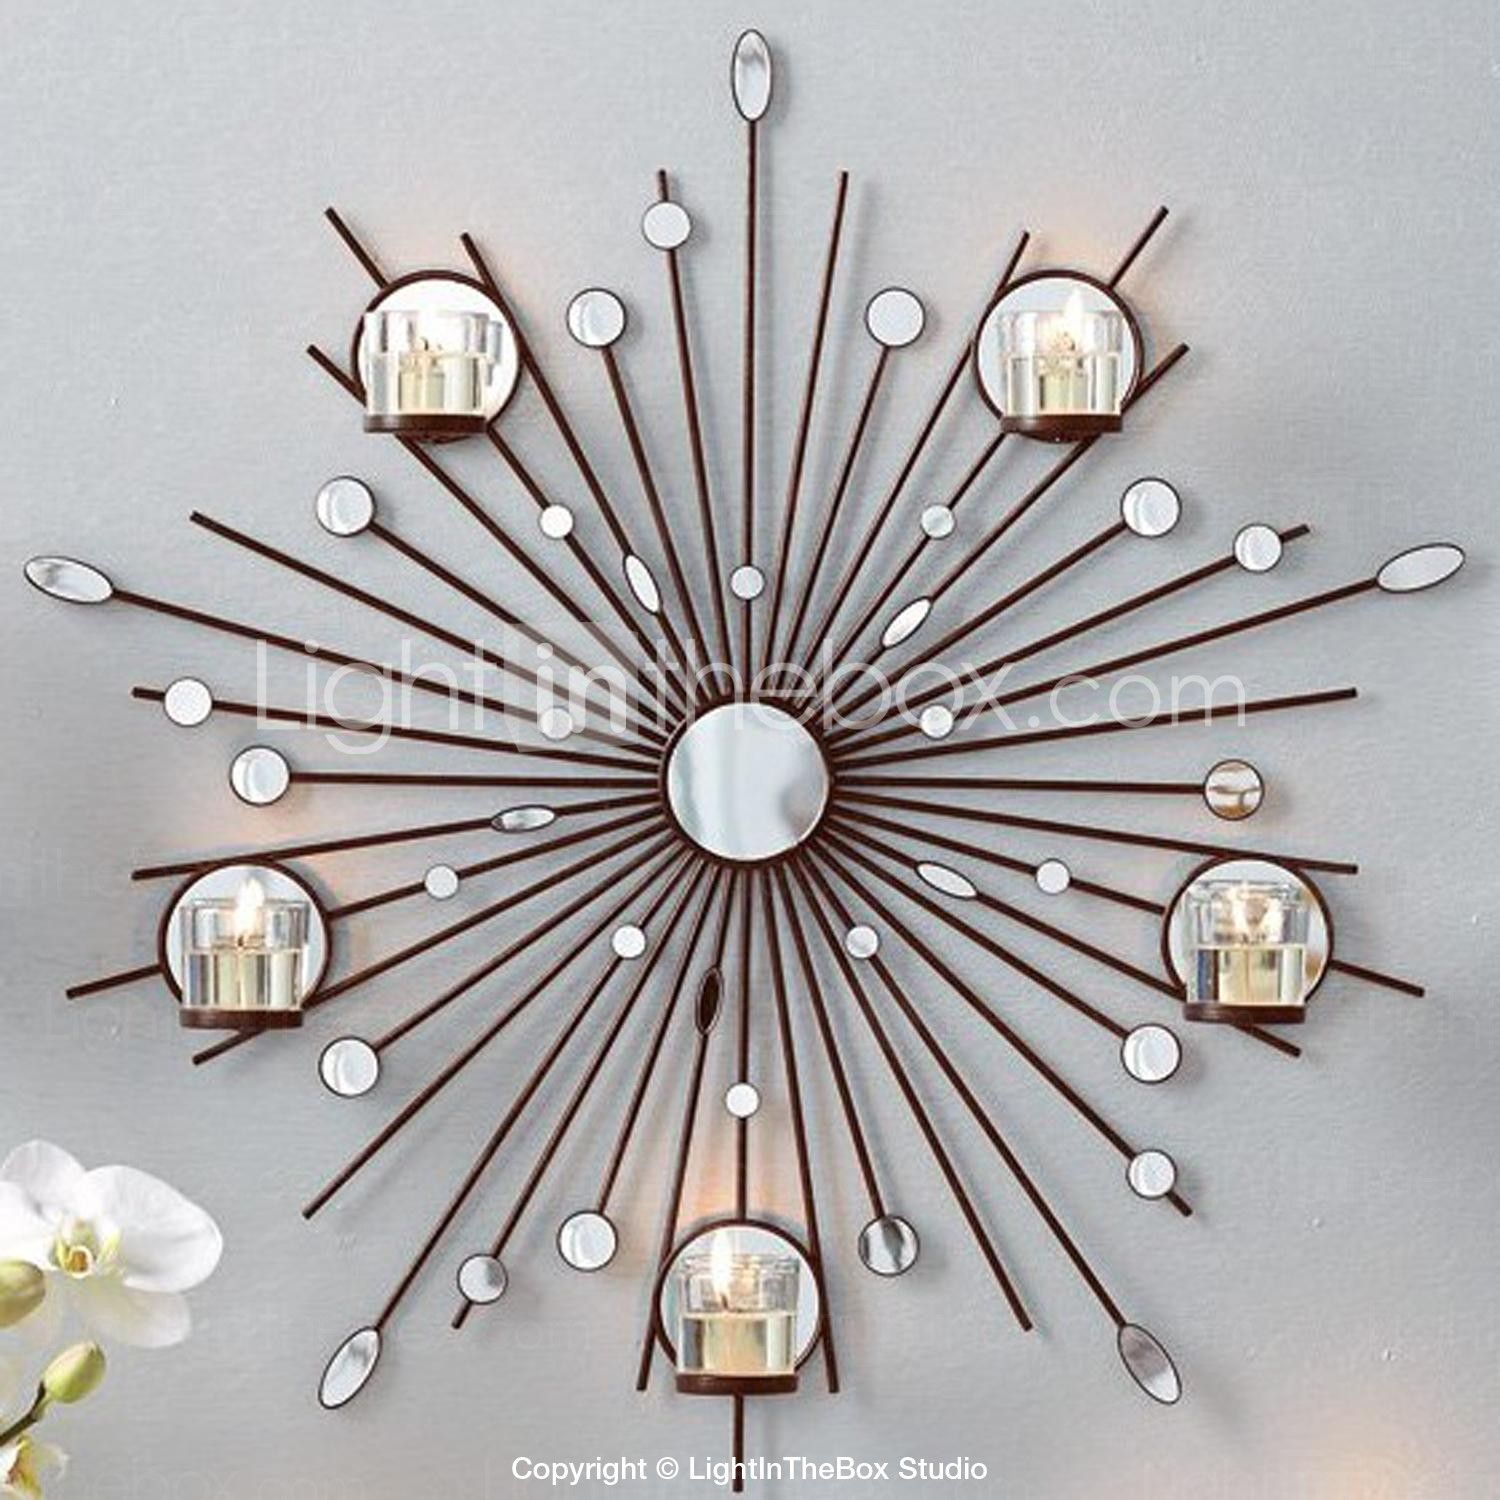 art decor flower design you panels decorative things about elephant starburst wall to starfish mirror outside need outdoor metal know